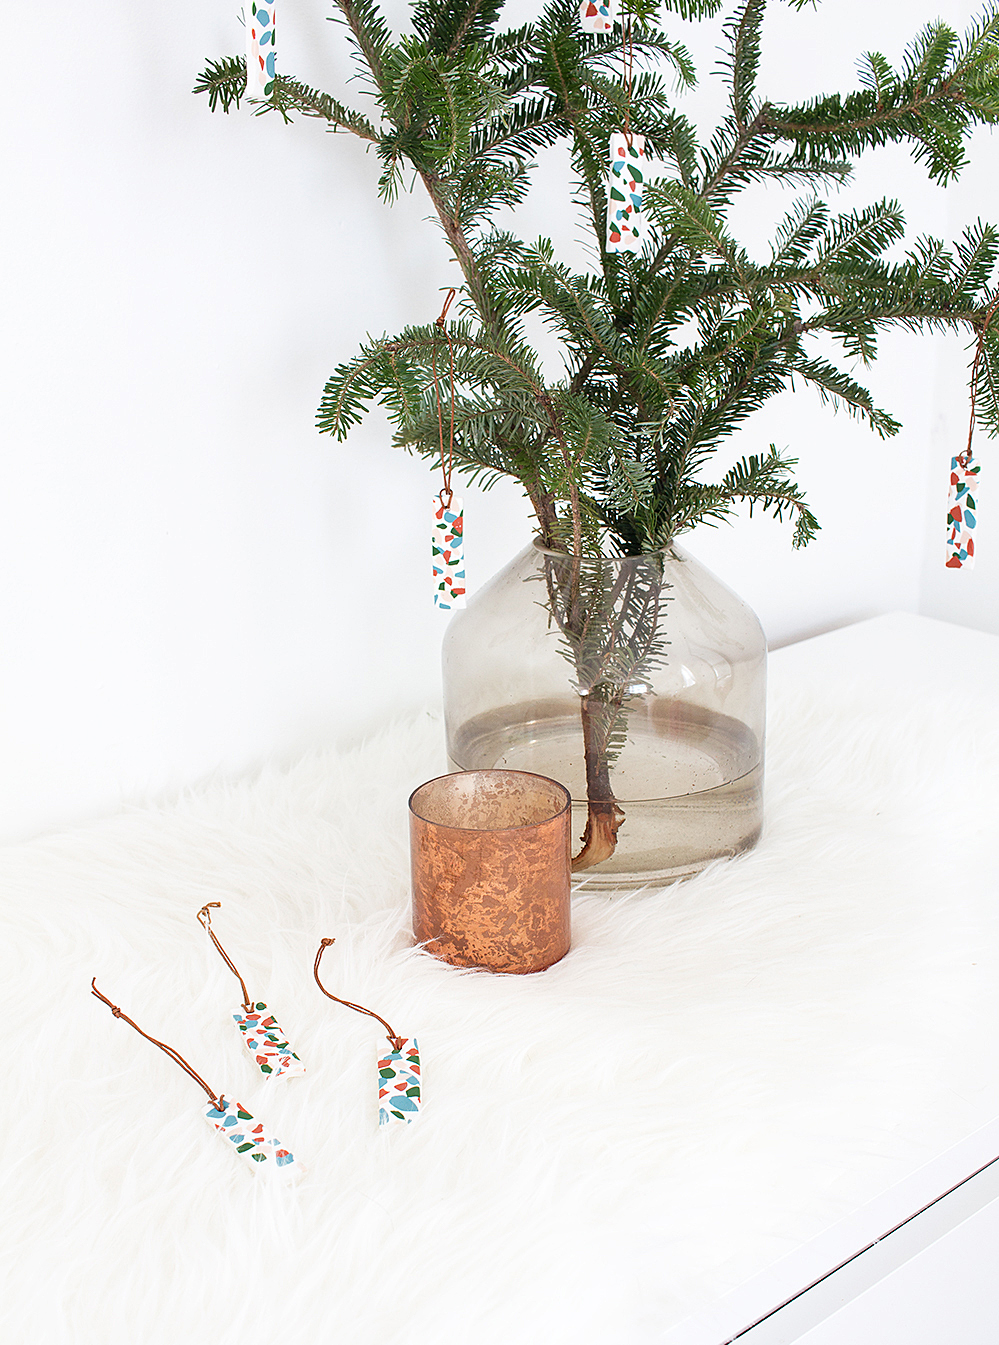 Make these easy and fun DIY terrazzo tile ornaments for a modern, colorful addition to your holiday decor.